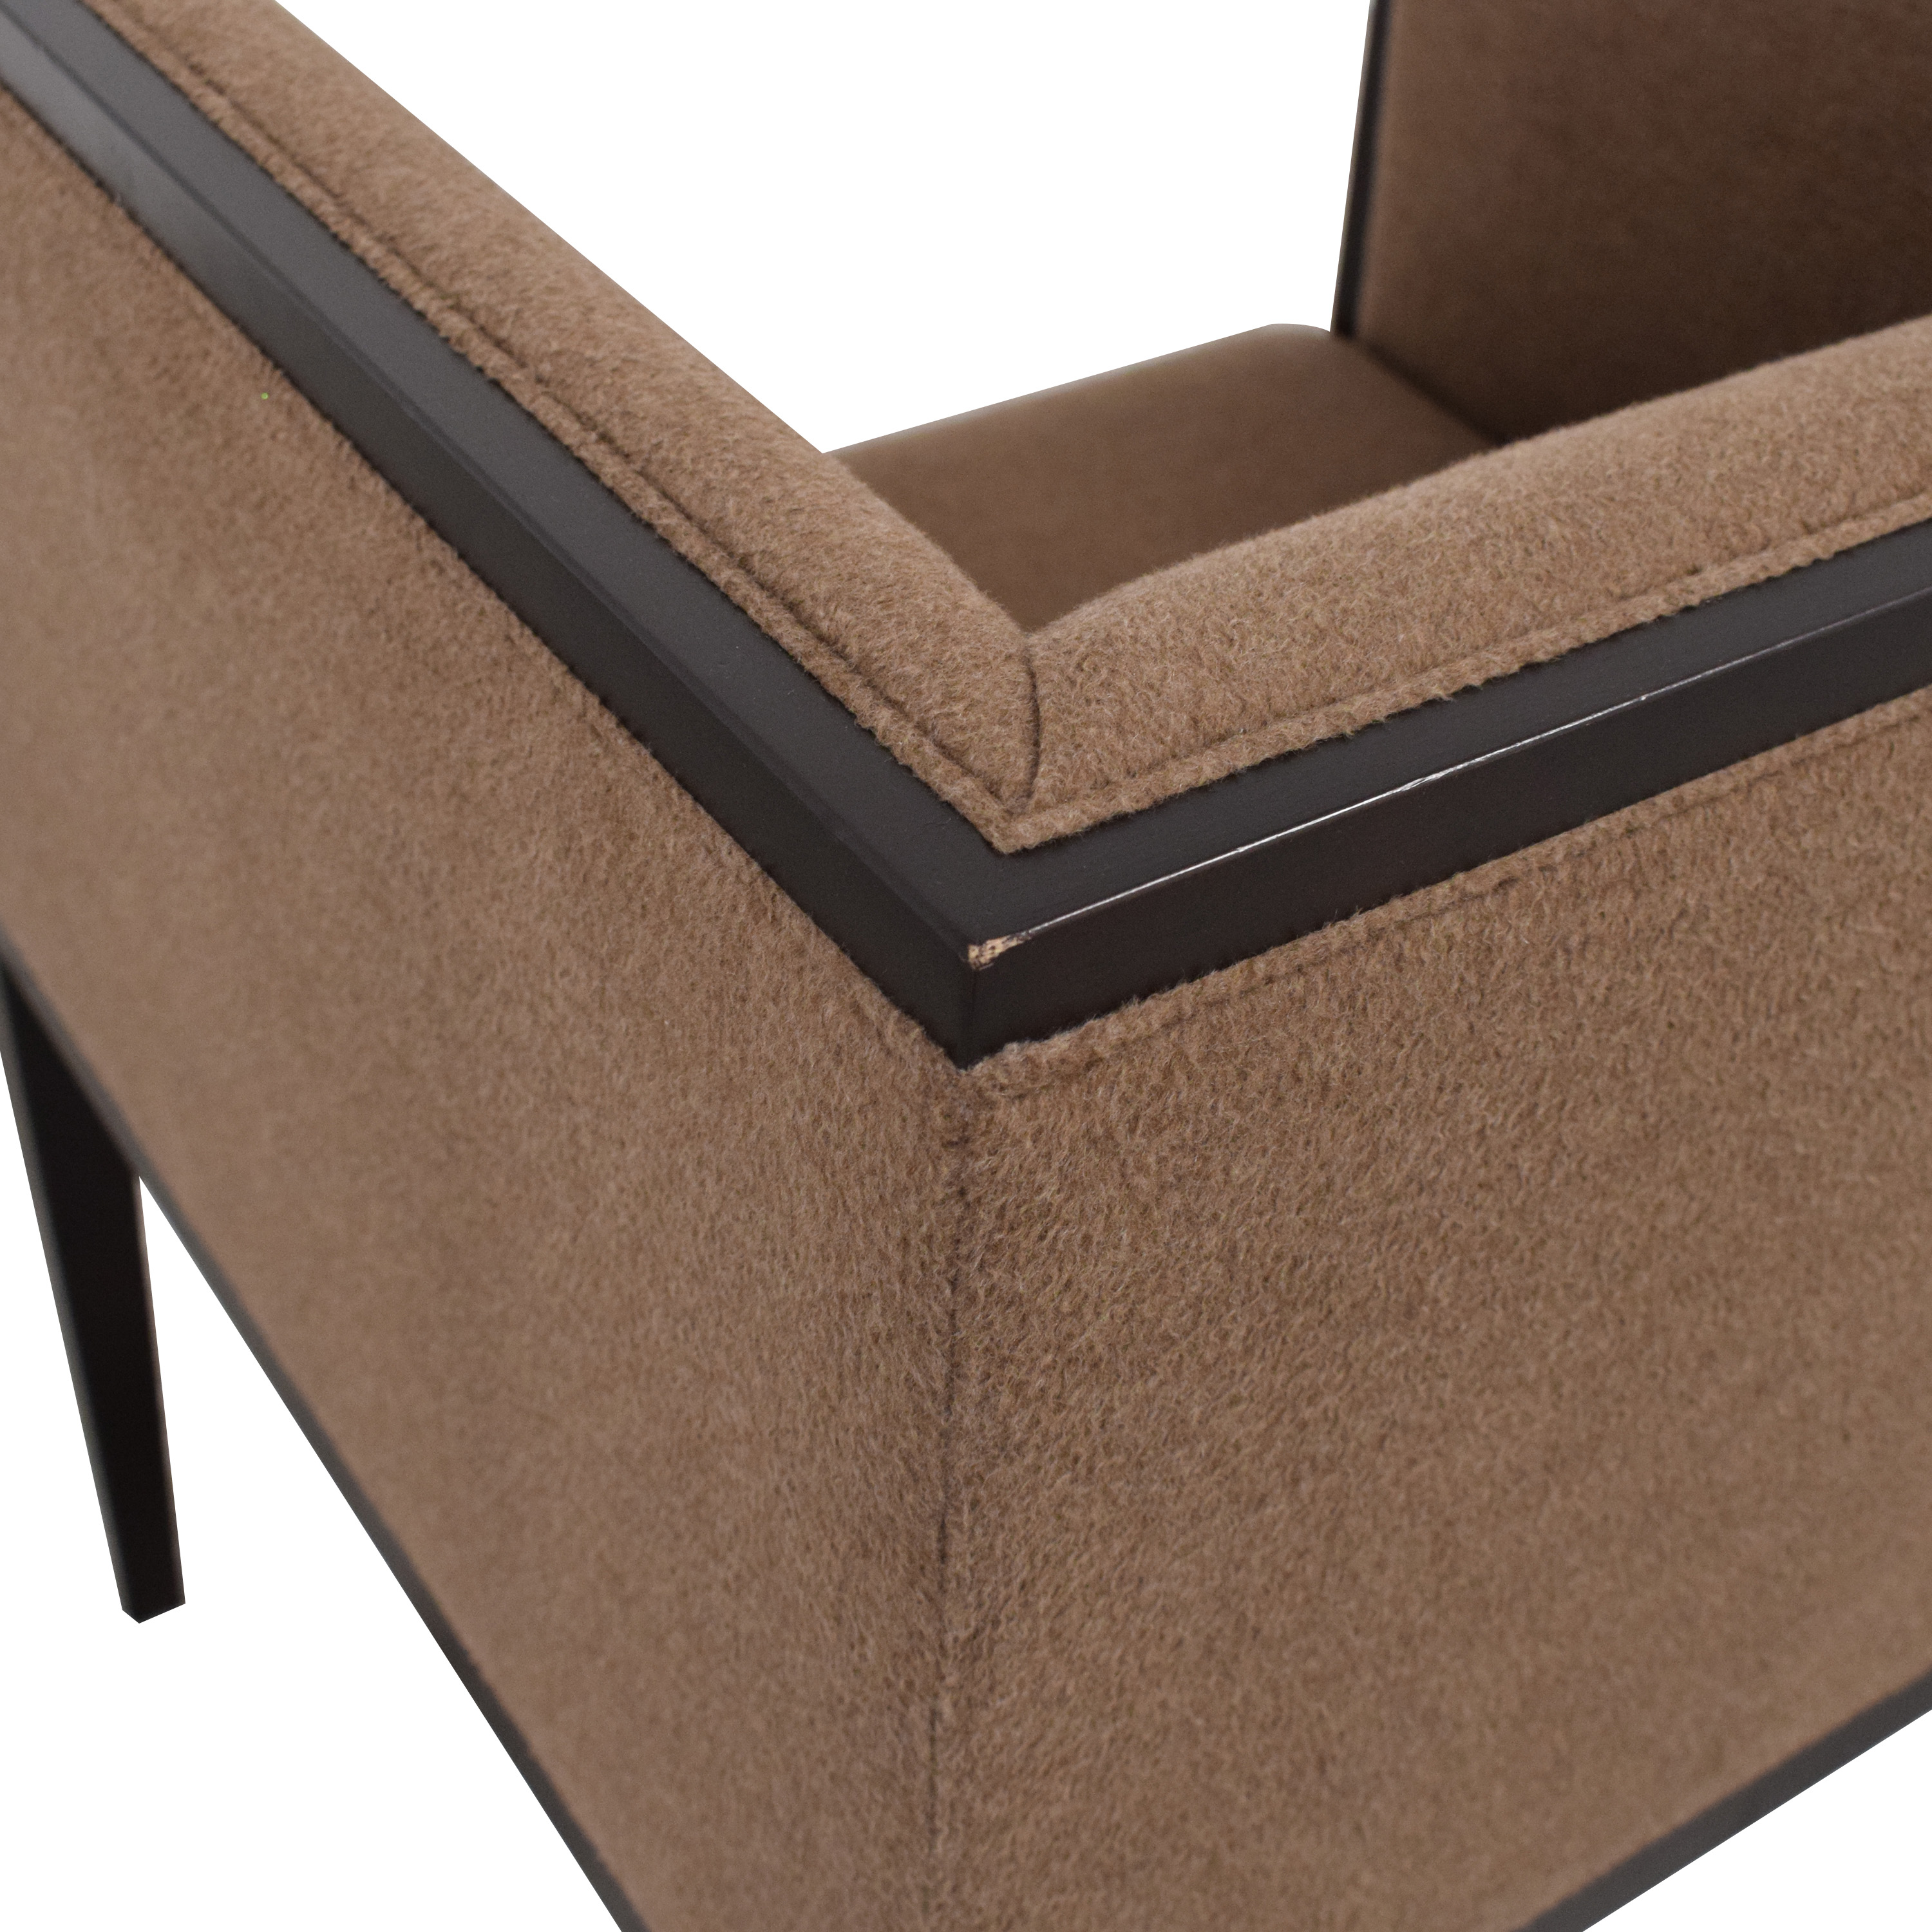 buy Hudson Furniture & Bedding Hudson Furniture & Bedding Contemporary Accent Chair online